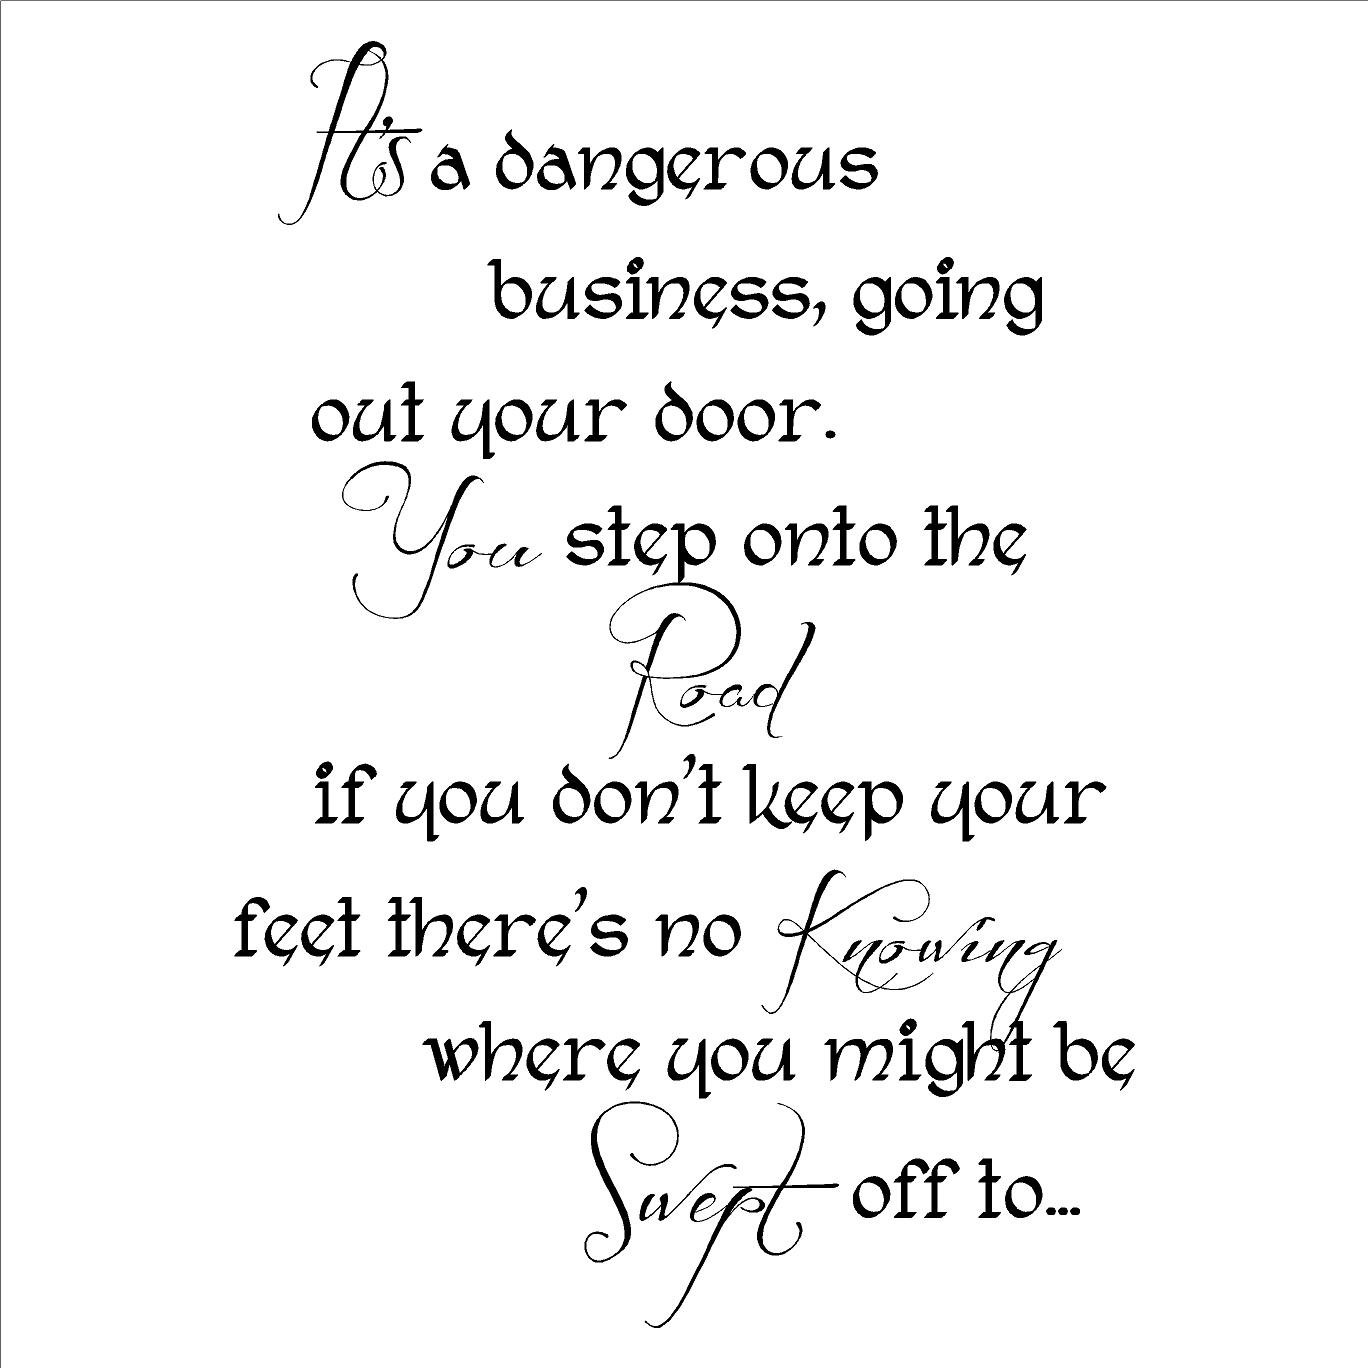 It's a Dangerous Business Going Out Your Door. You Step Onto the Road and  If You Don't Keep Your Feet There's No Knowing Where You'll Be Swept Off to  wall ...